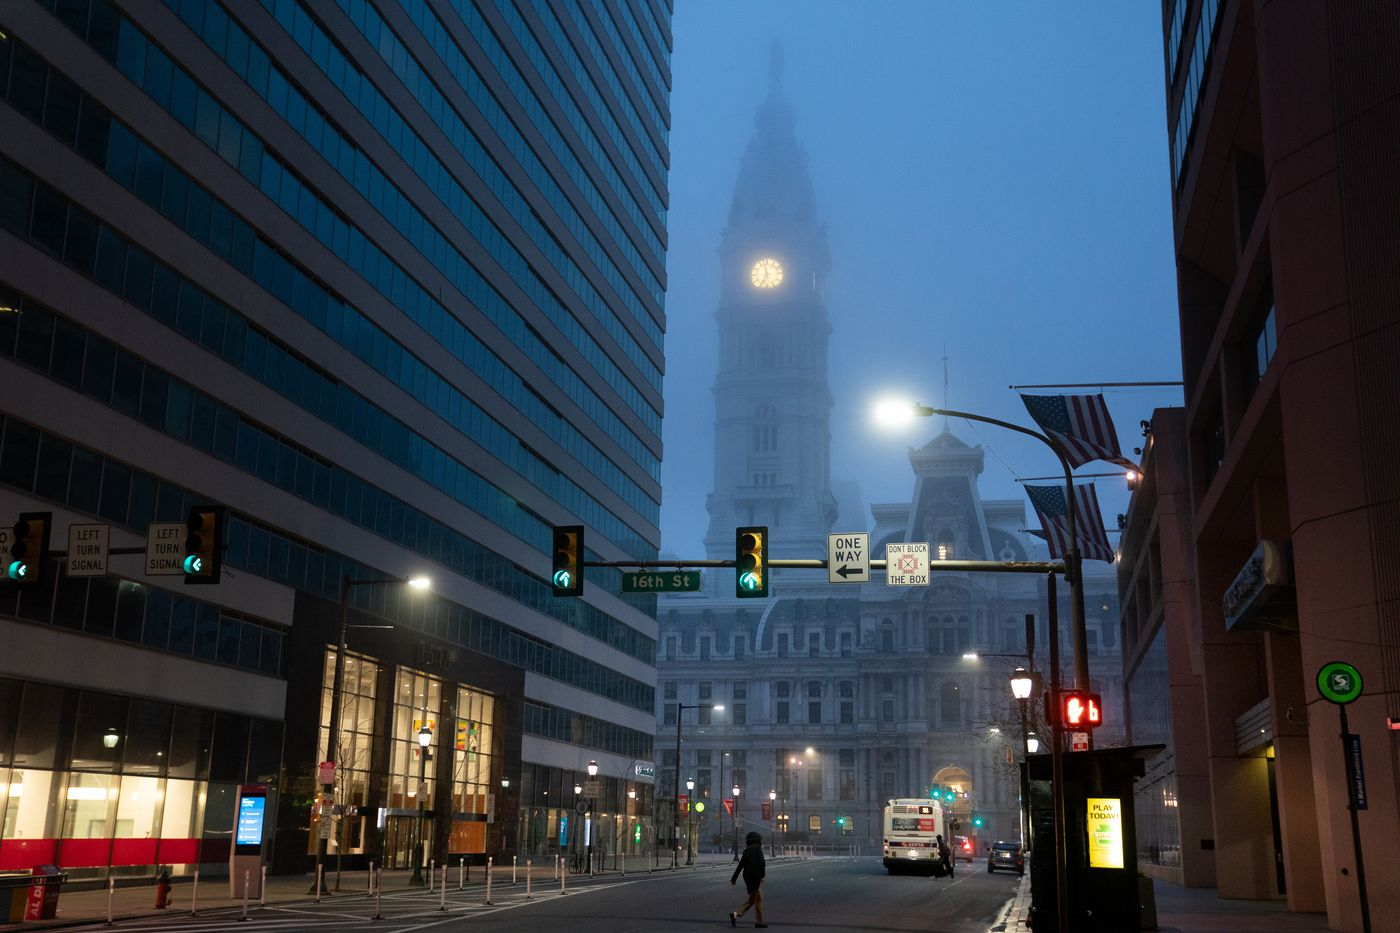 Market street is almost empty early on Friday morning around 7am in front of City Hall, in Philadelphia, March 20, 2020. The coronavirus continues to spread in Pennsylvania and across the United States, in PA all businesses that aren't 'life-sustaining' closed.